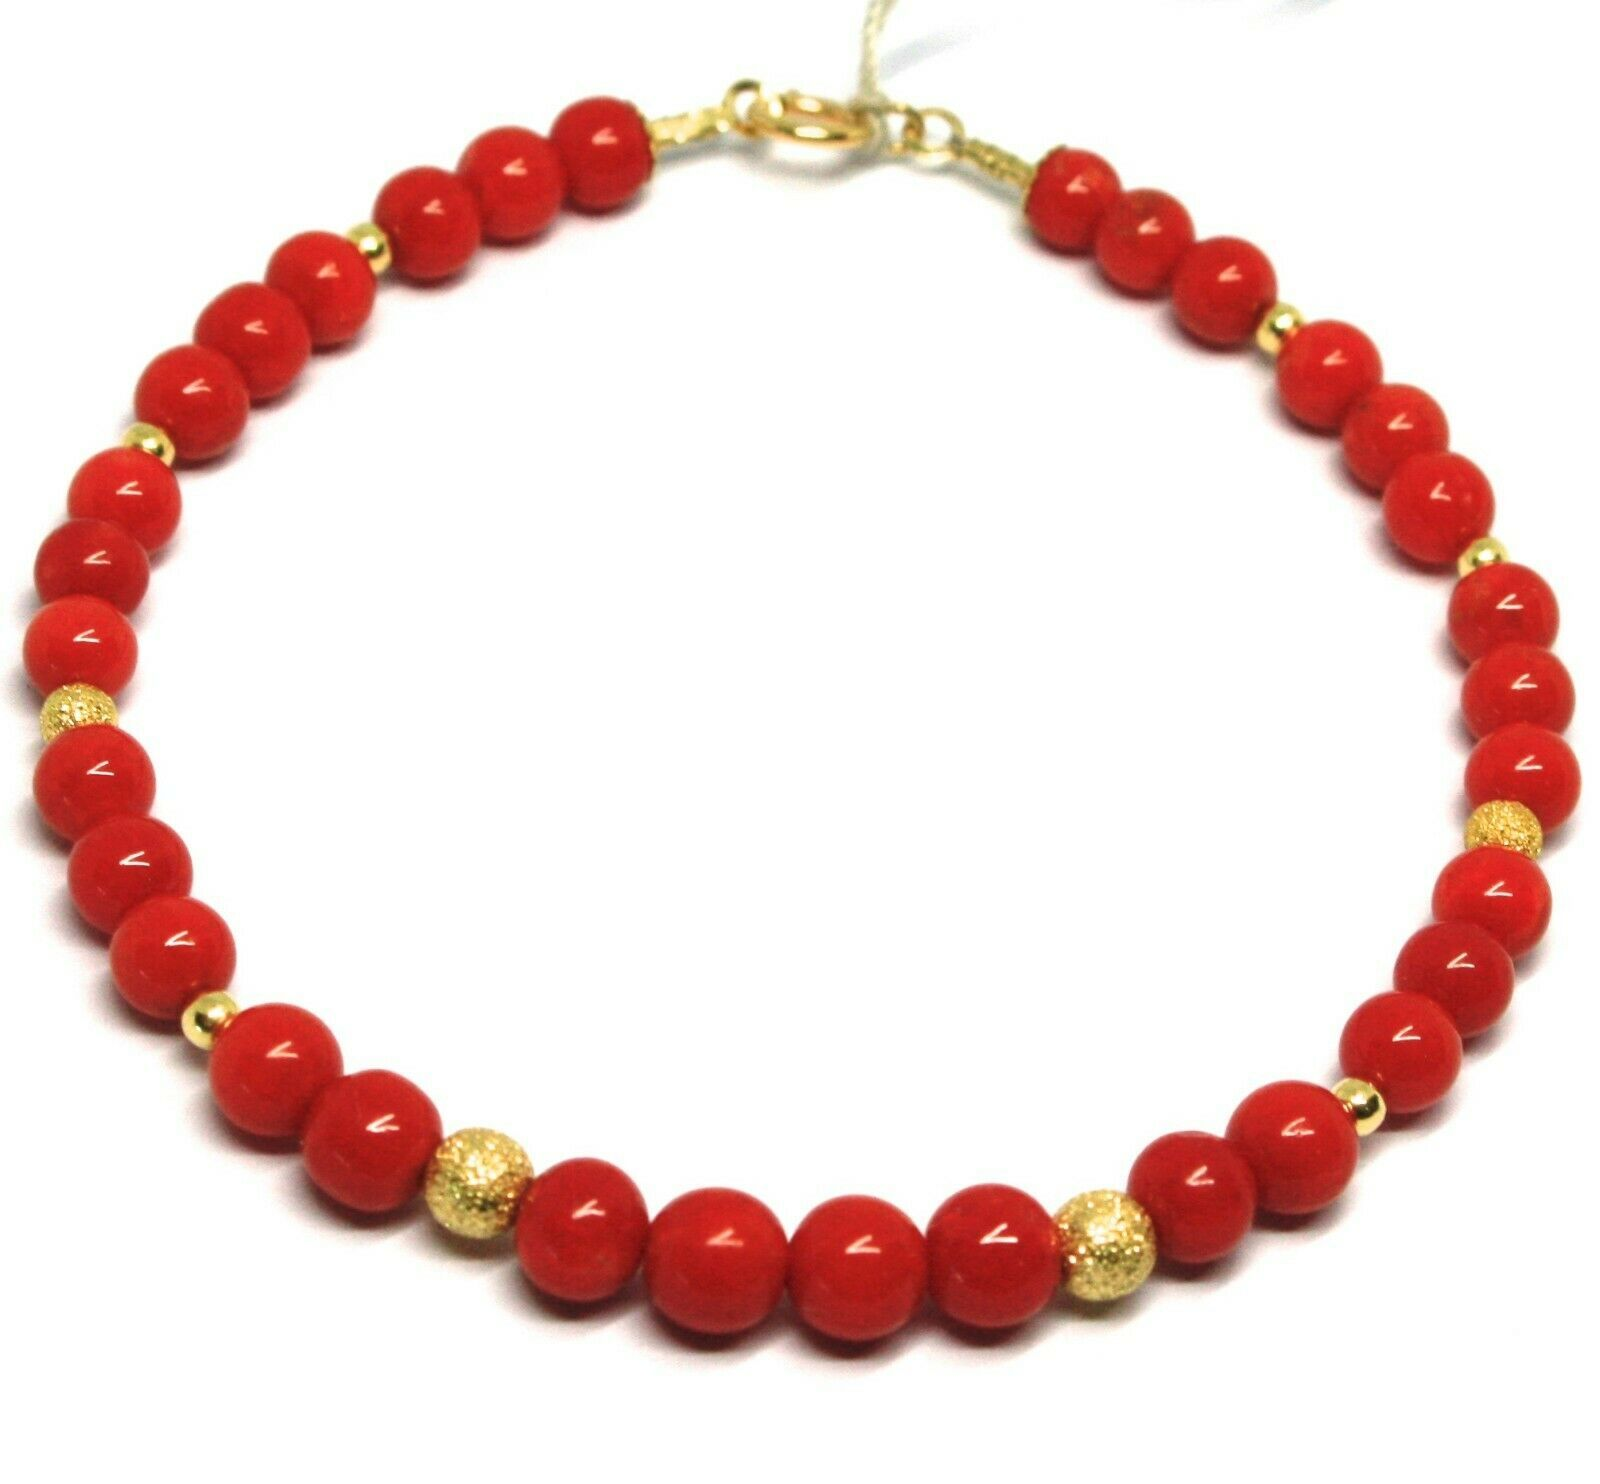 BRACELET OR JAUNE 18K 750,CORAIL ROUGE,SPHÈRES MEULES DIAMANTÉES,MADE IN ITALY